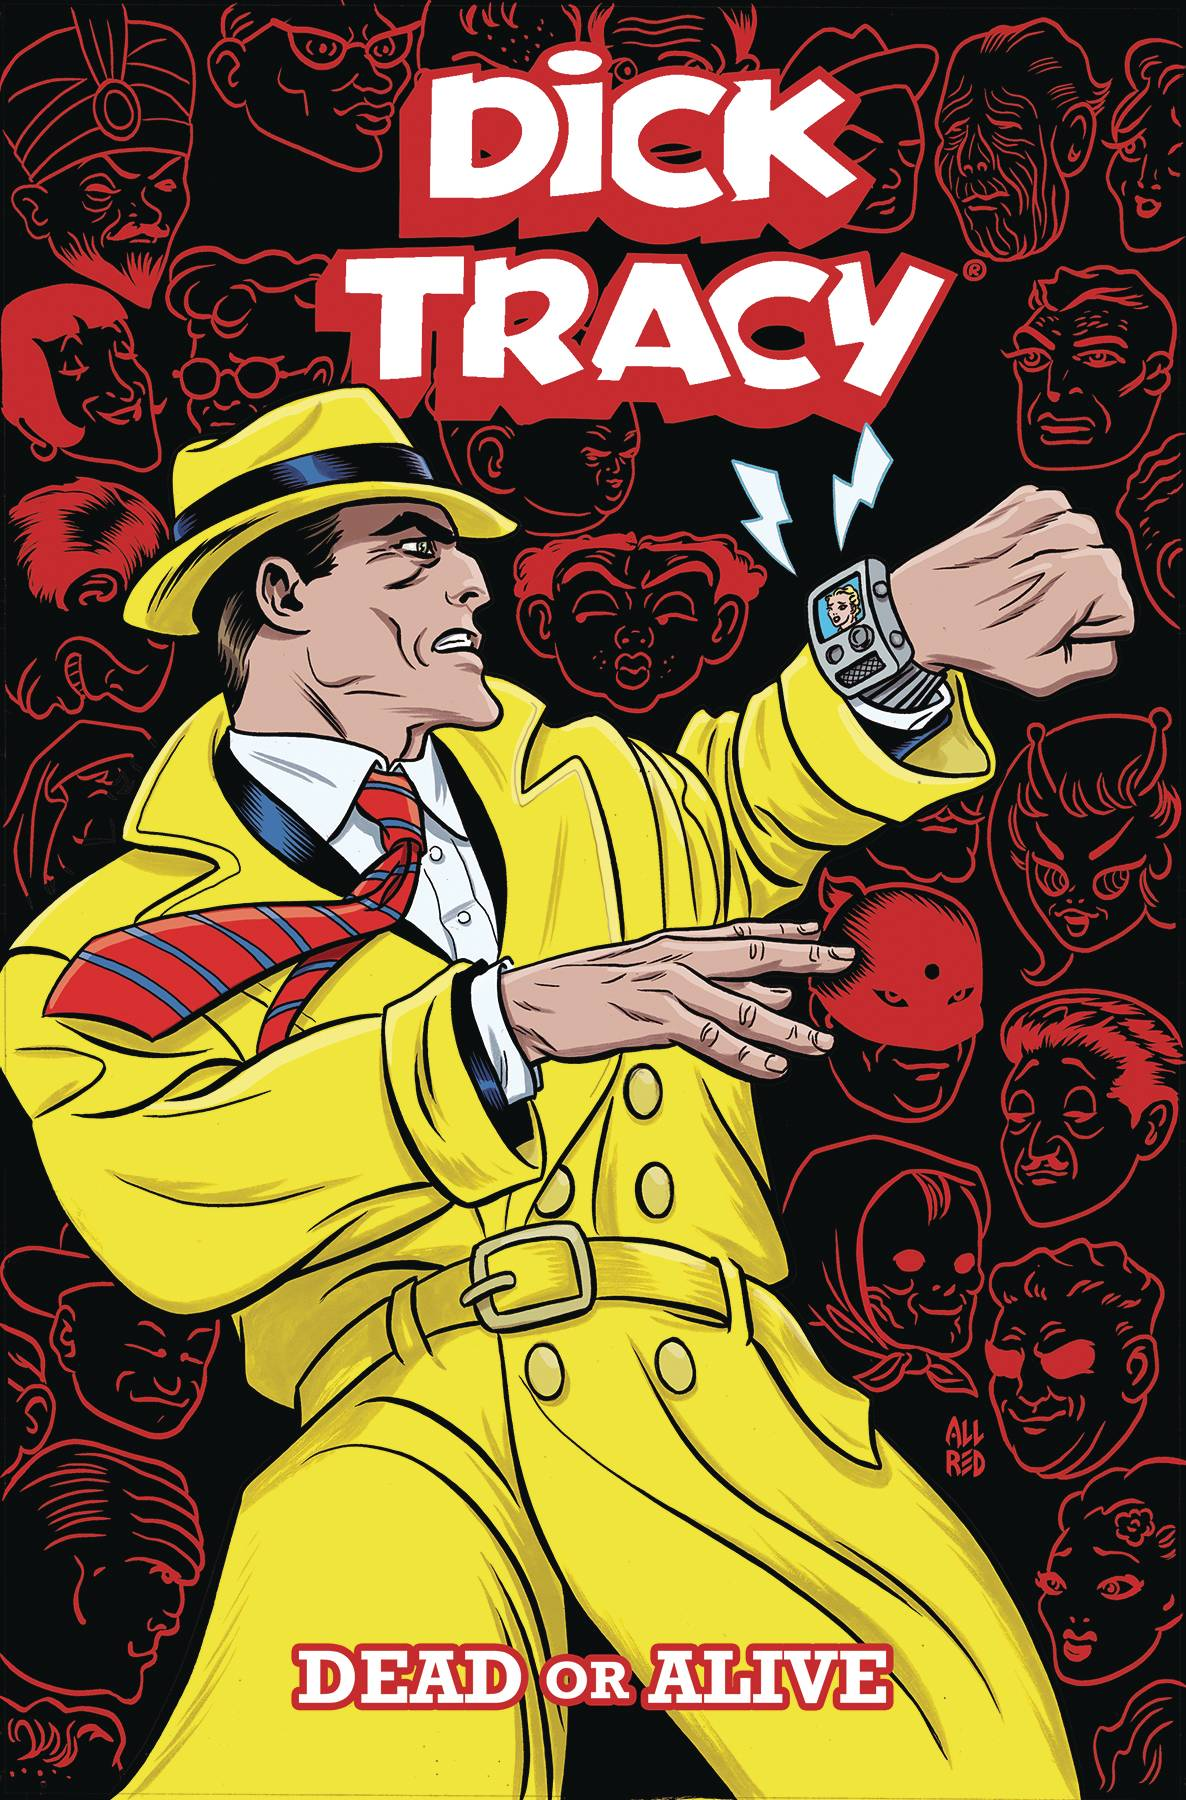 DICK TRACY DEAD OR ALIVE TP.jpg